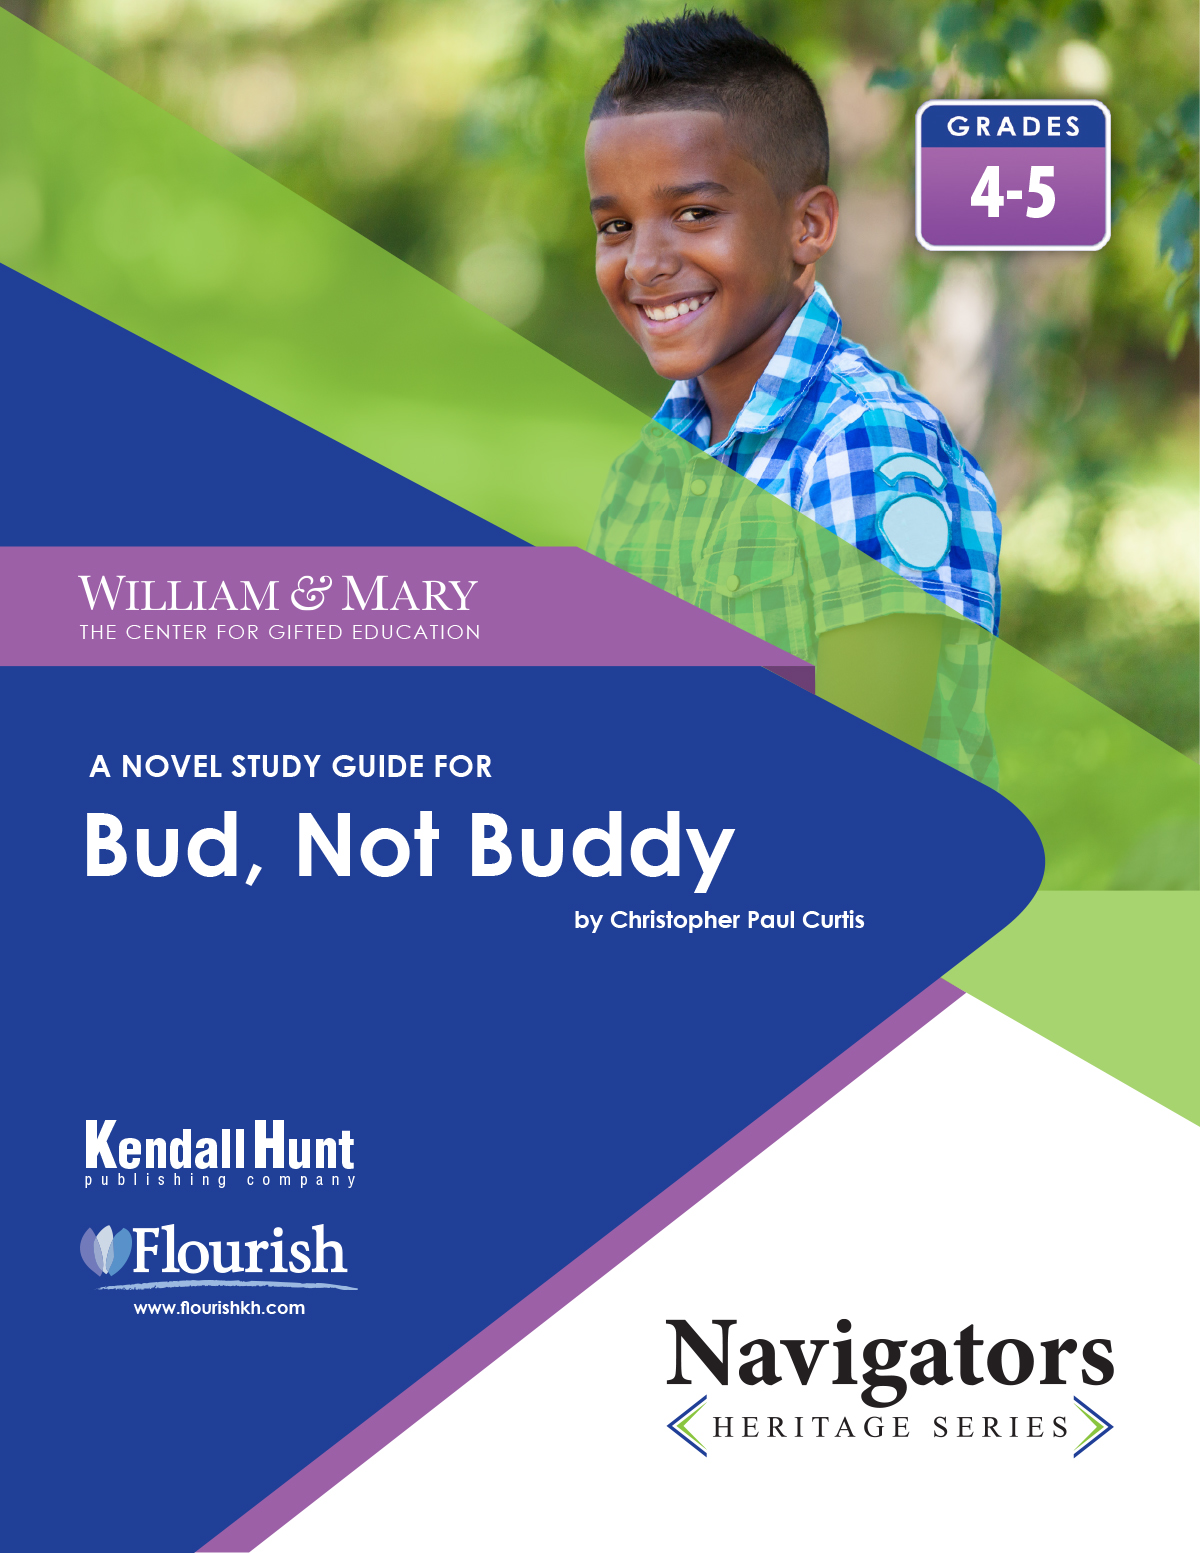 William & Mary Navigator Bud, Not Buddy